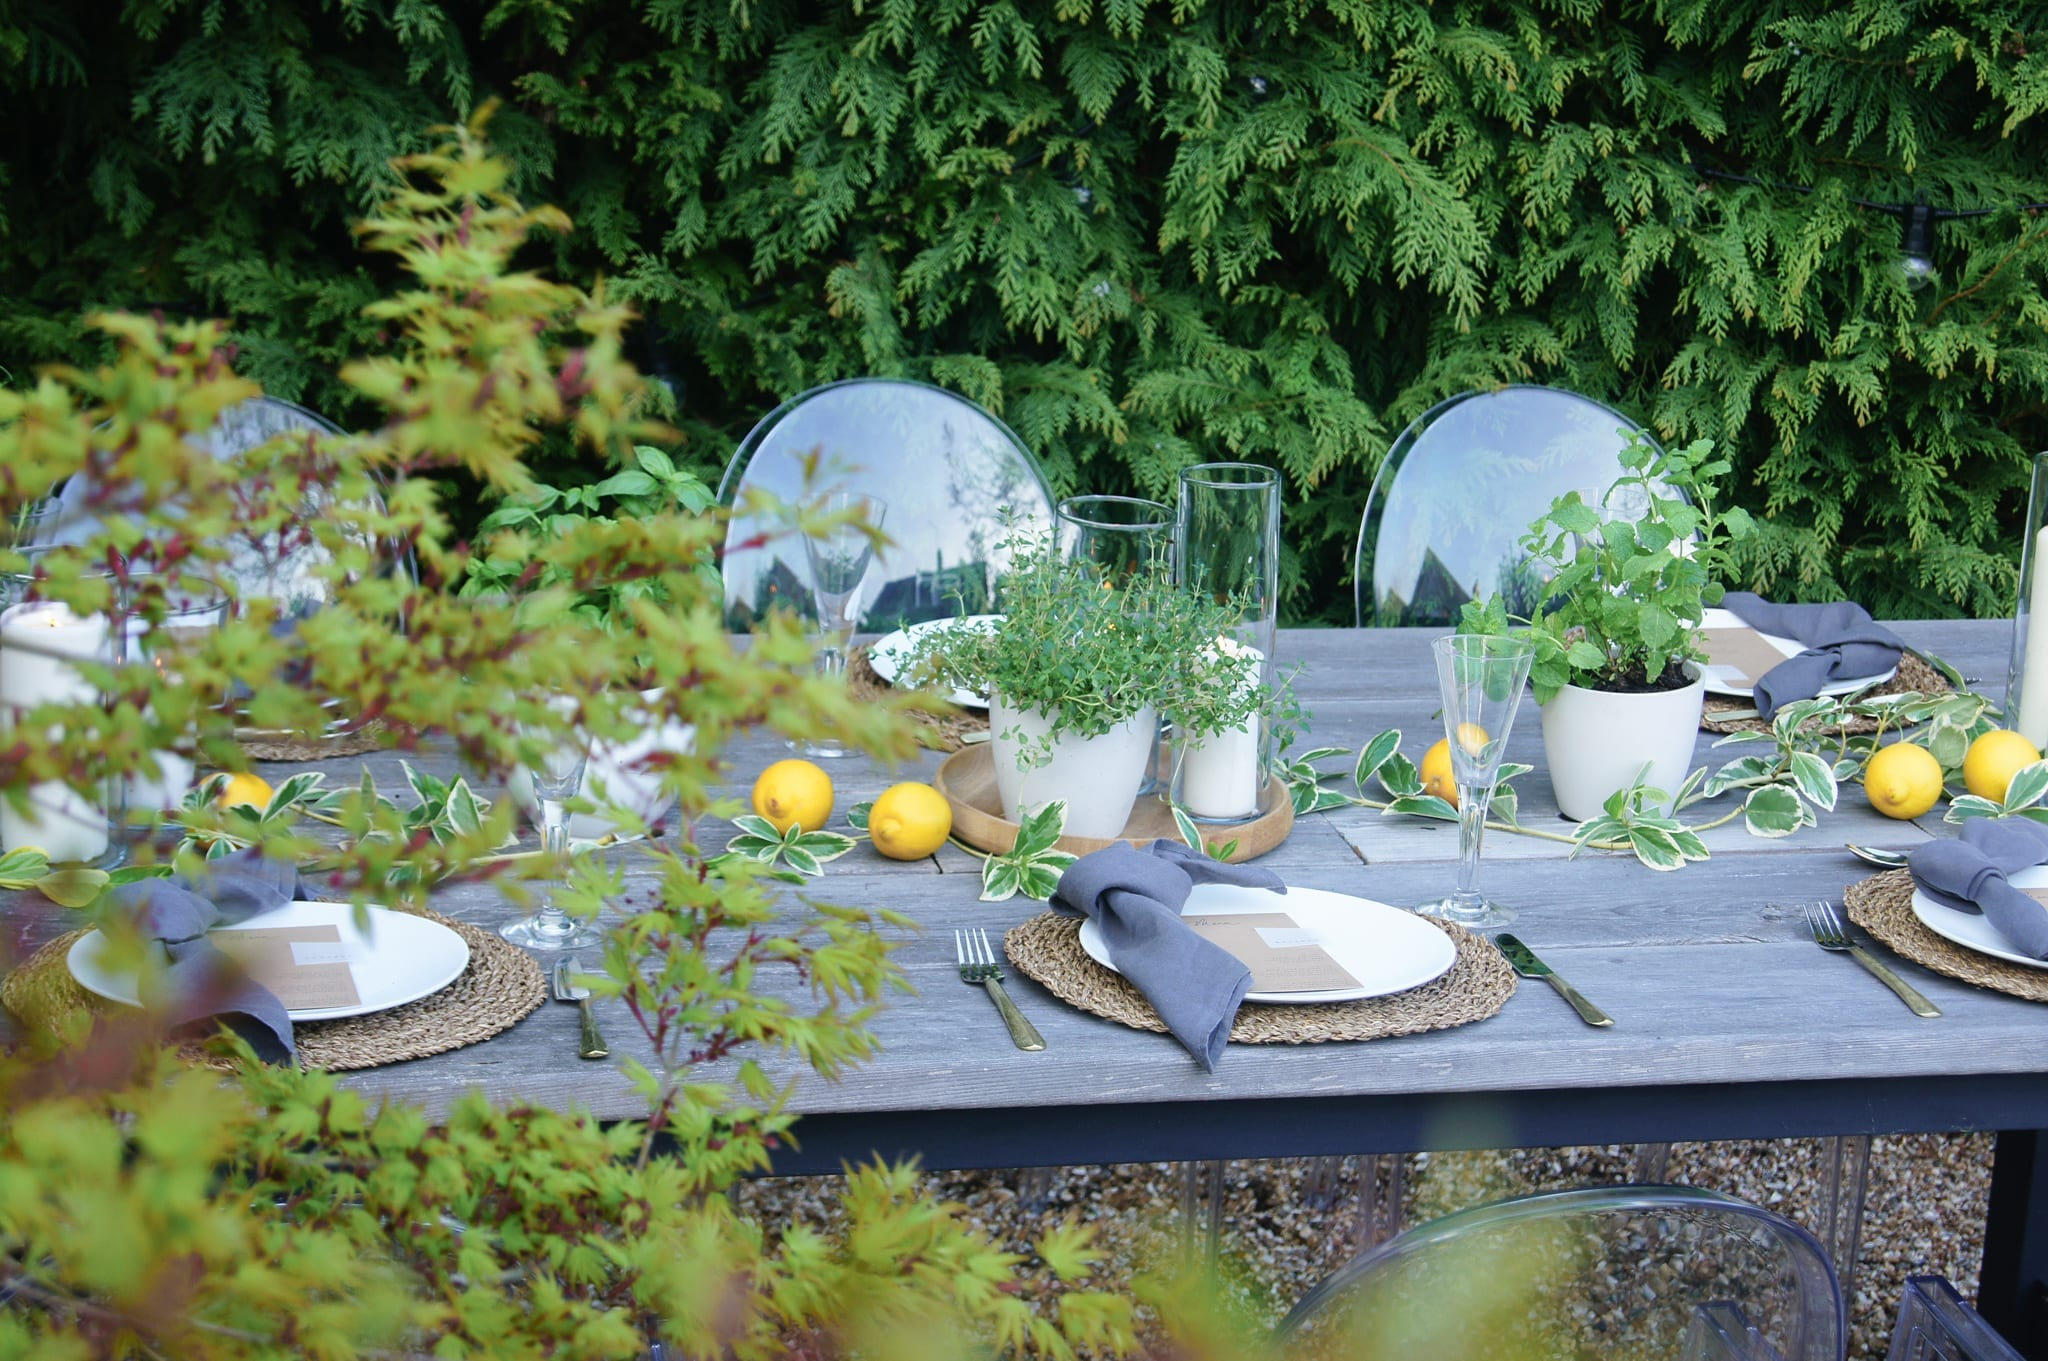 View of table with herbs and lemons styling